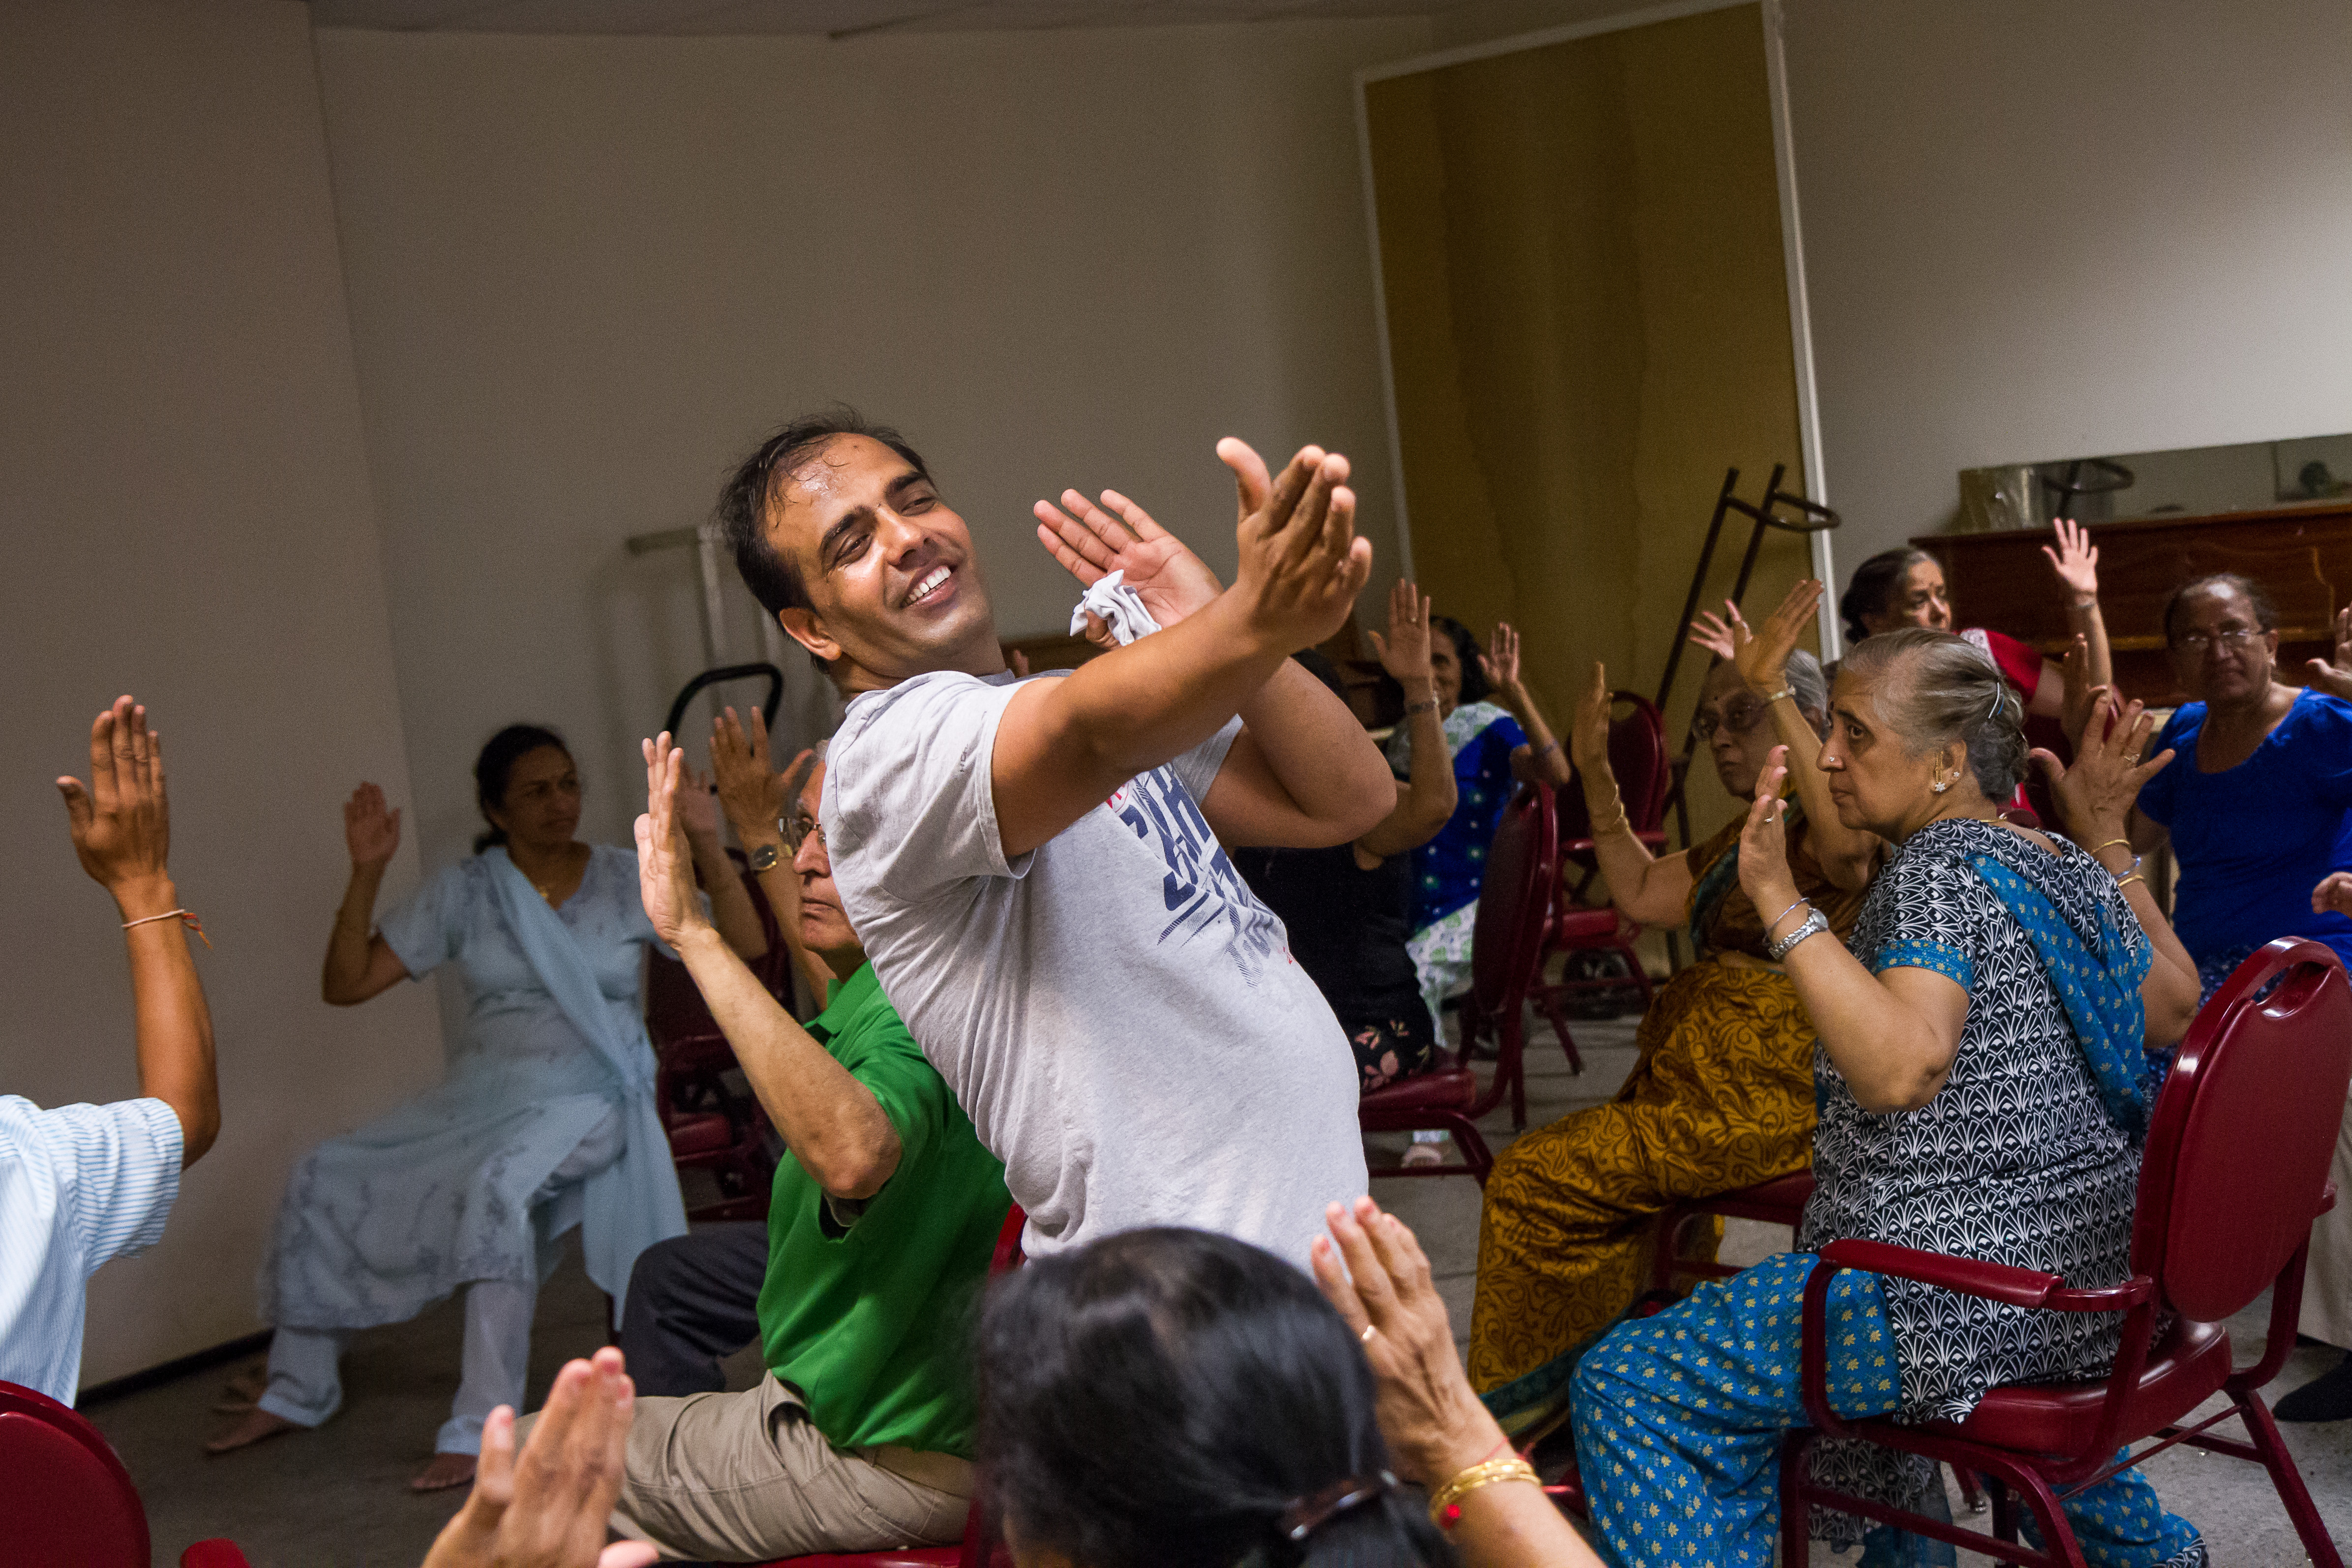 India Home seniors participate in an exercise class.